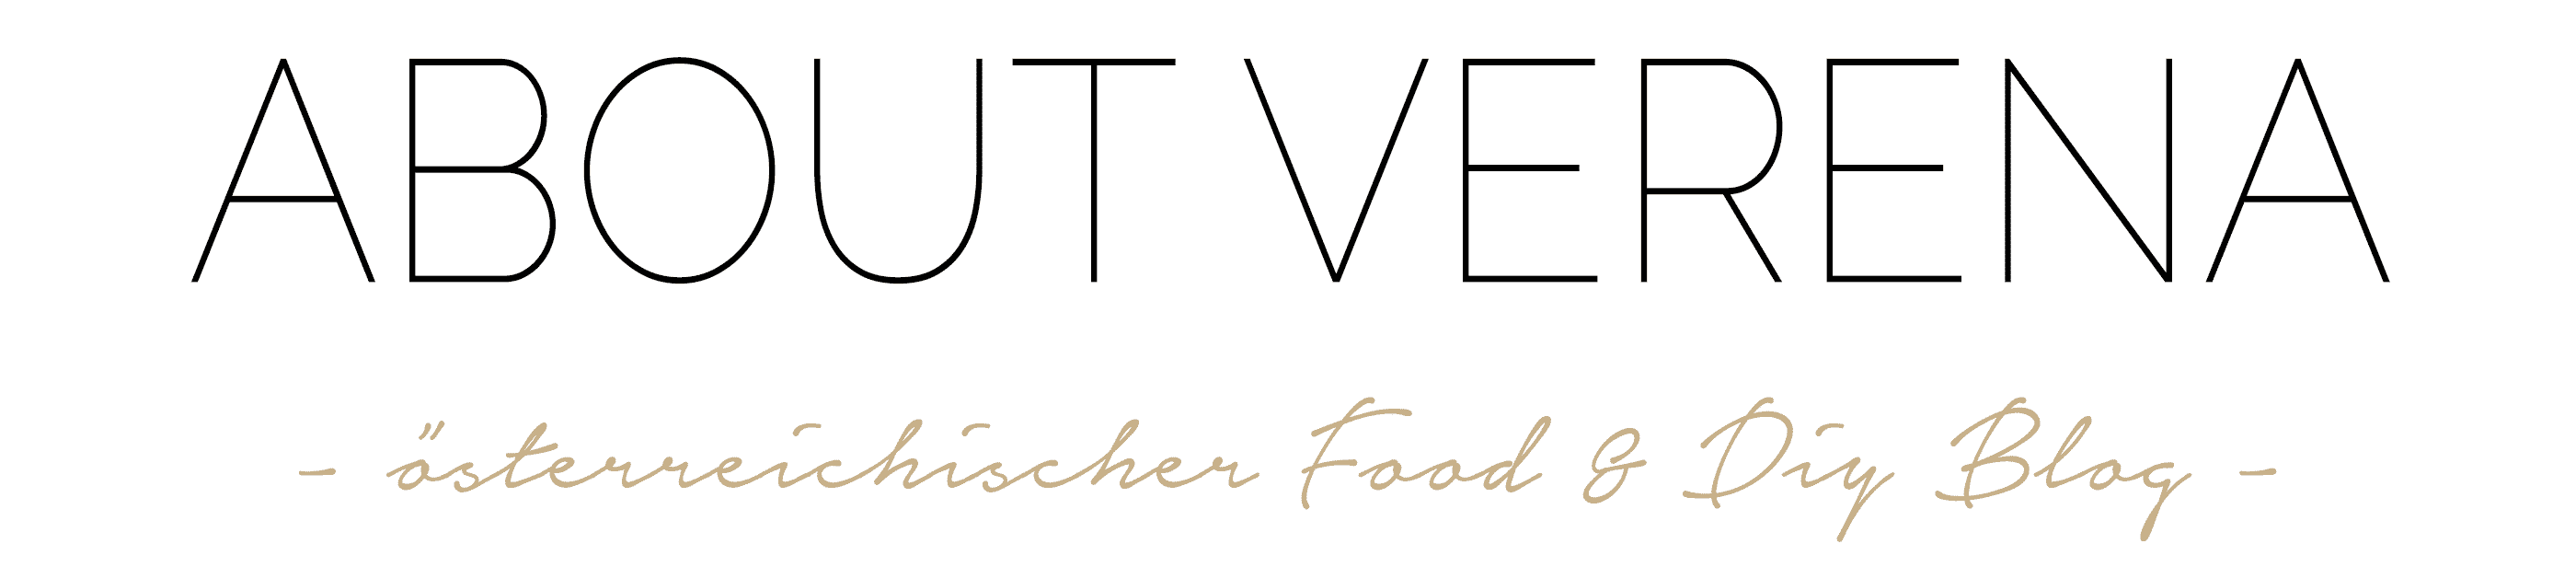 ABOUT VERENA: Food- und DIY-Blog